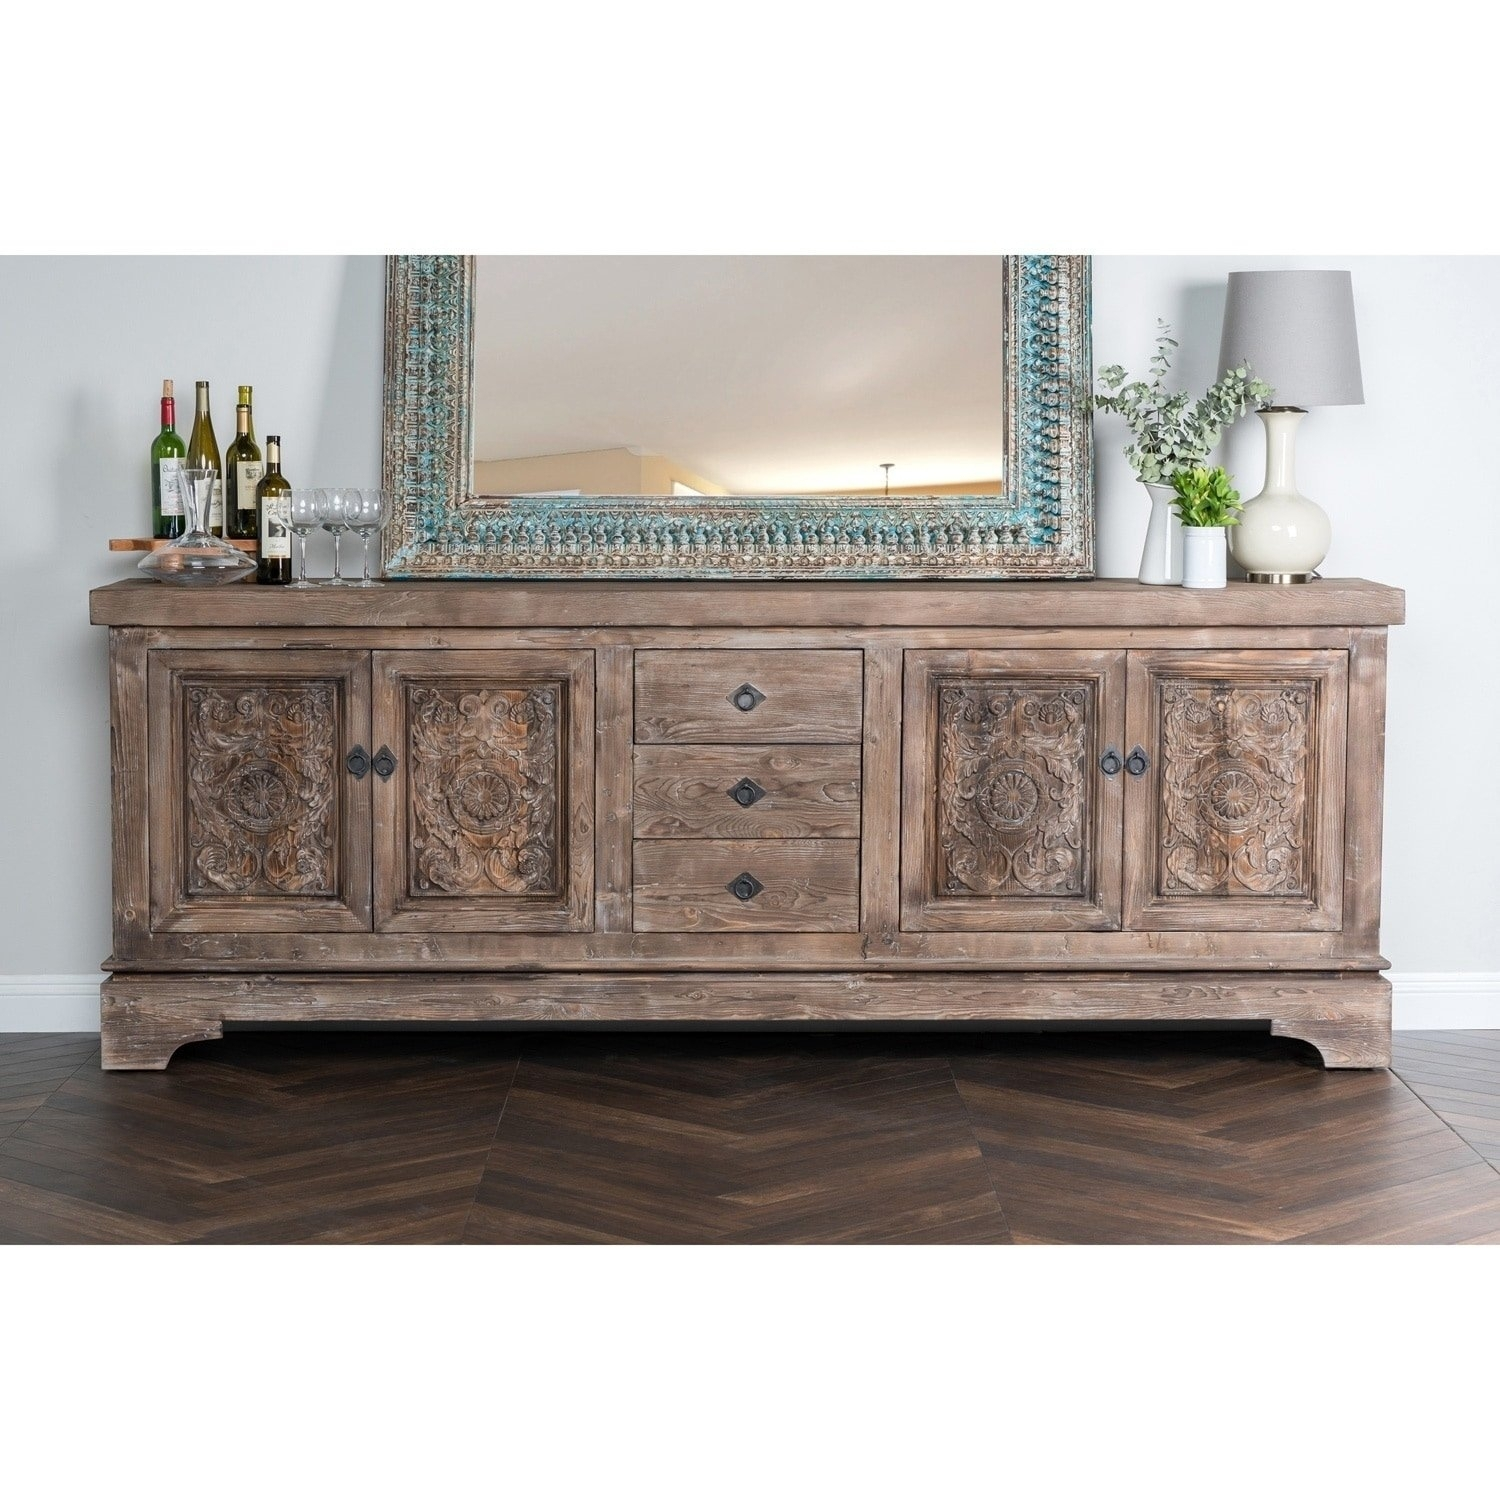 Shop Allen Rustic Taupe Reclaimed Pine 106 Inch Sideboardkosas Pertaining To Current Reclaimed Pine & Iron 72 Inch Sideboards (View 4 of 20)